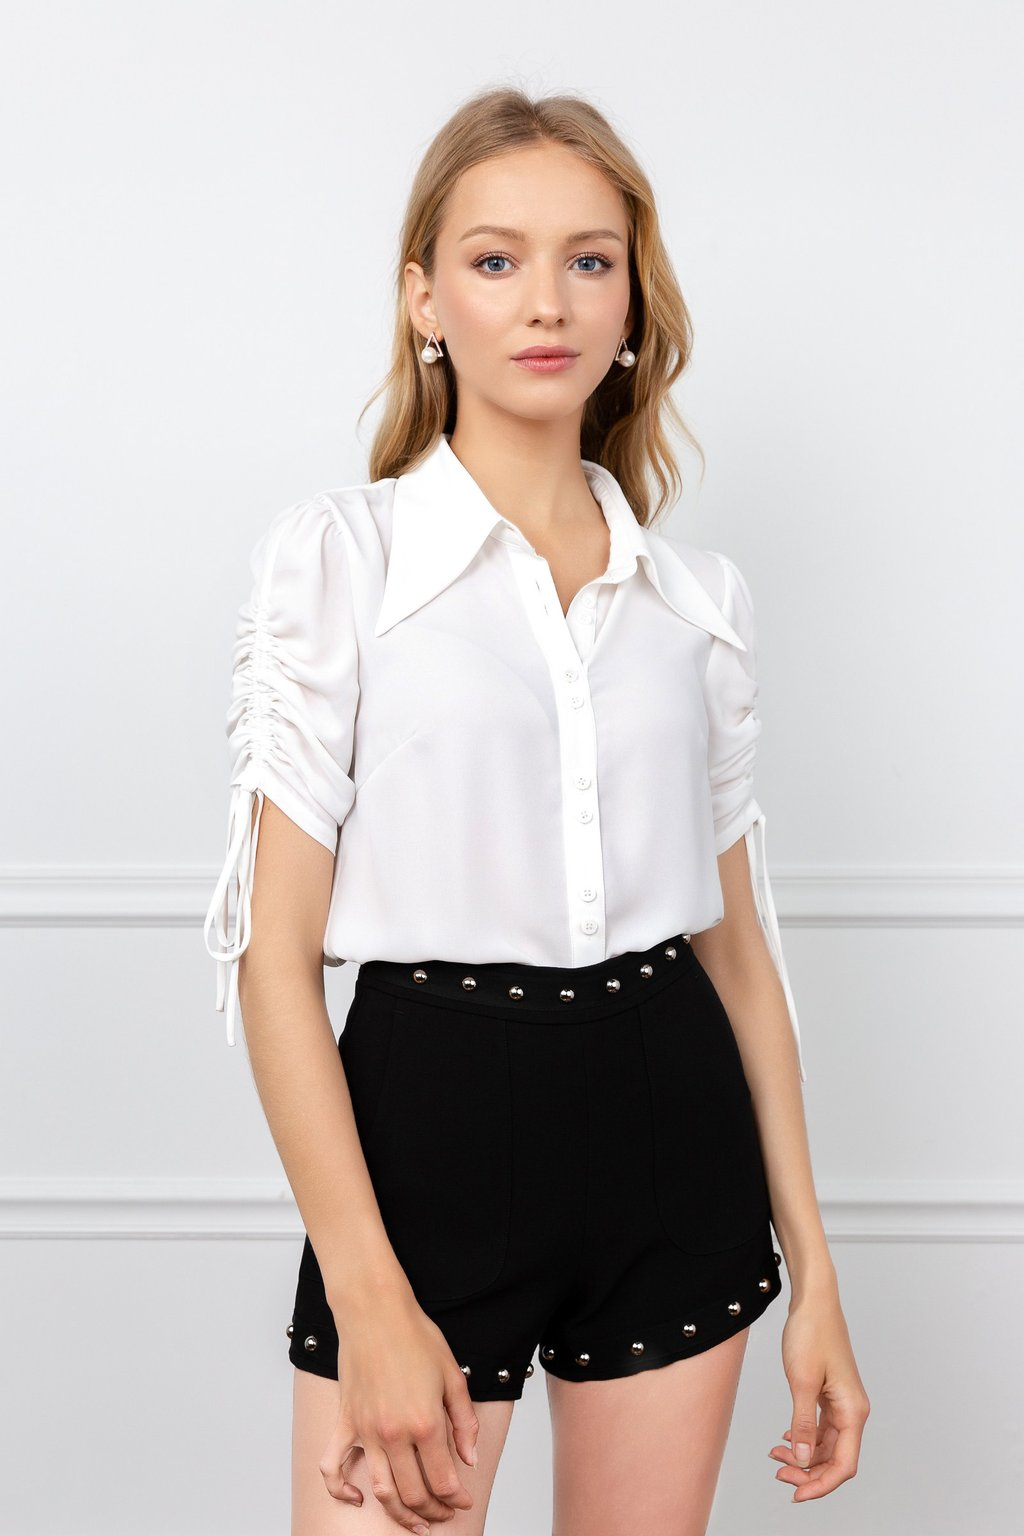 White Literary Blouse by J.ING LA women's fashion